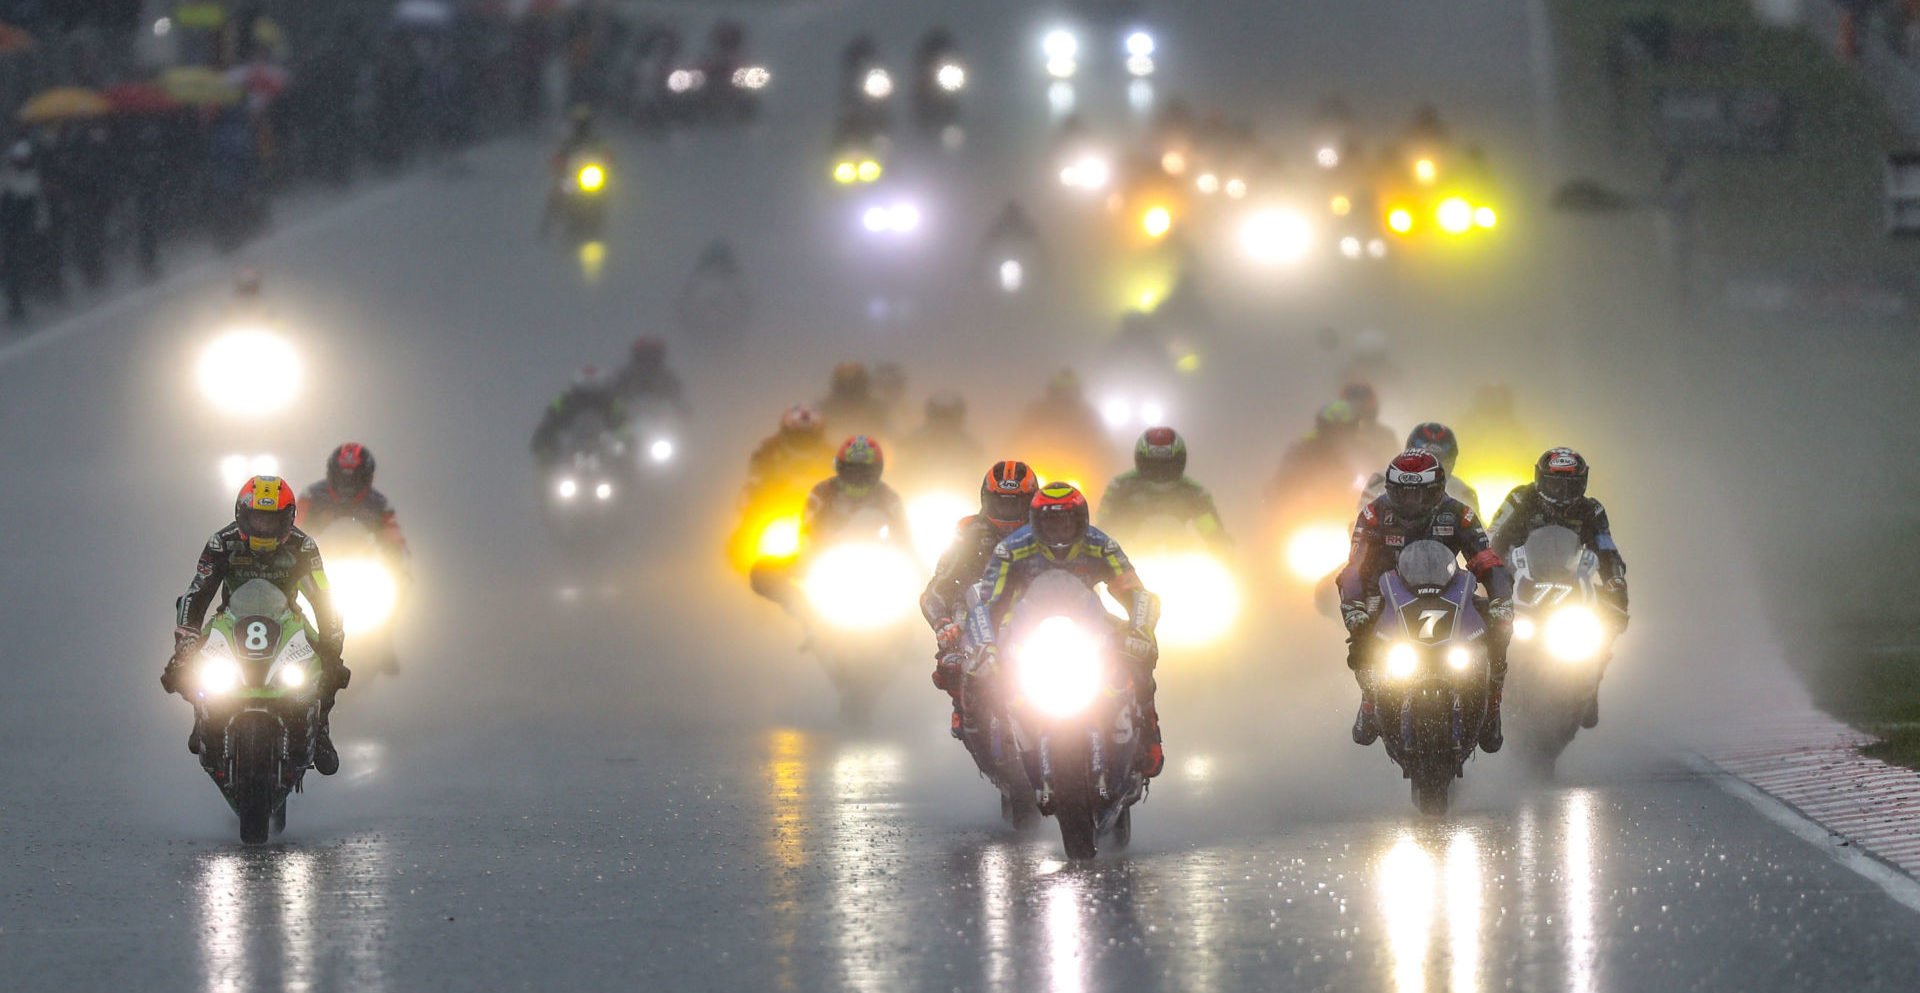 The start of the 8 Hours of Sepang. Photo by David Reygondeau/Good-Shoot.com, courtesy of Team Suzuki Press Office.